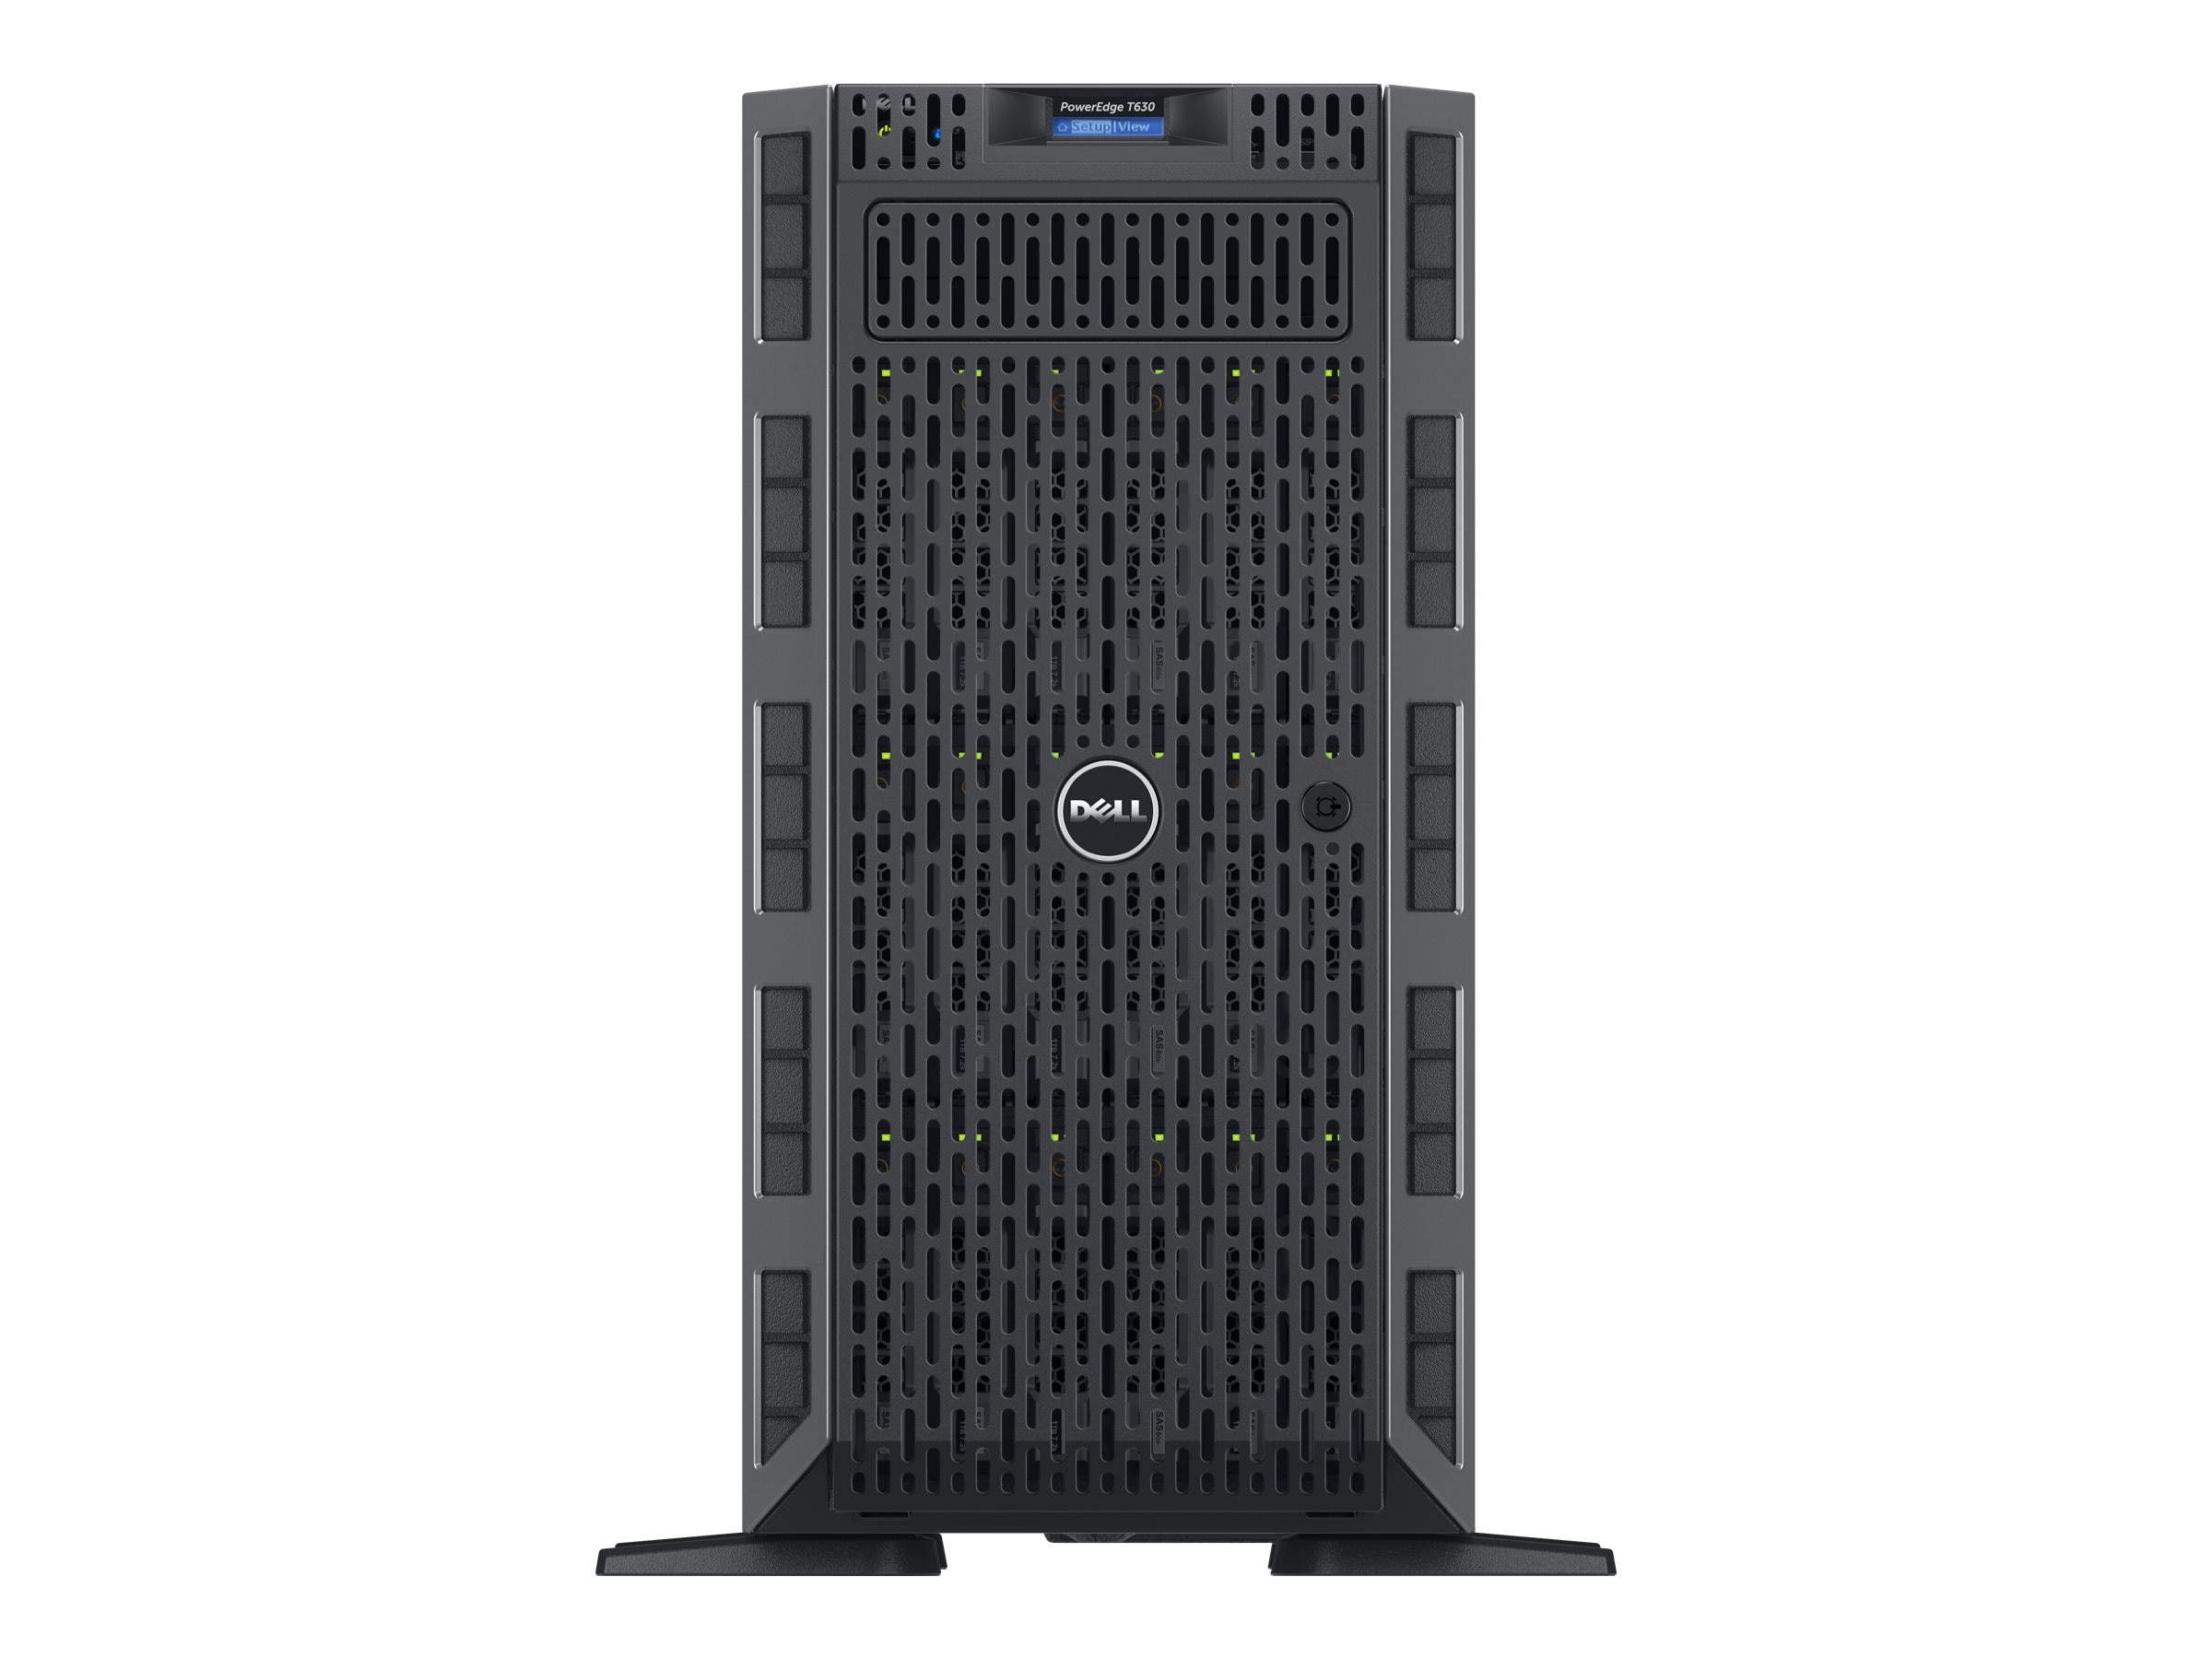 Dell PowerEdge T630 Intel 2.1GHz Xeon, 463-7667